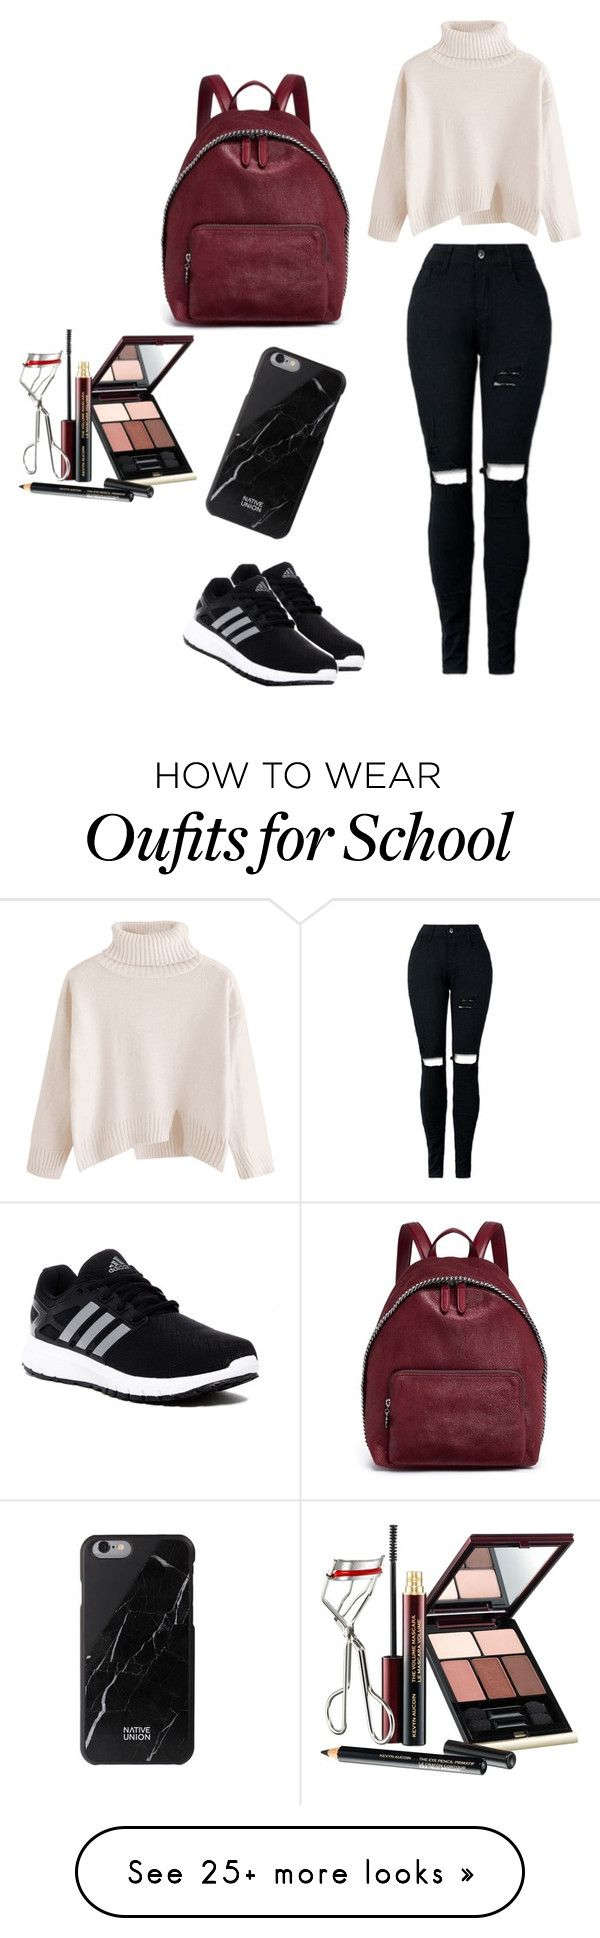 """school day"" by cookiefanoffashion on Polyvore featuring adidas, STELLA McCARTNEY and Kevyn Aucoin"